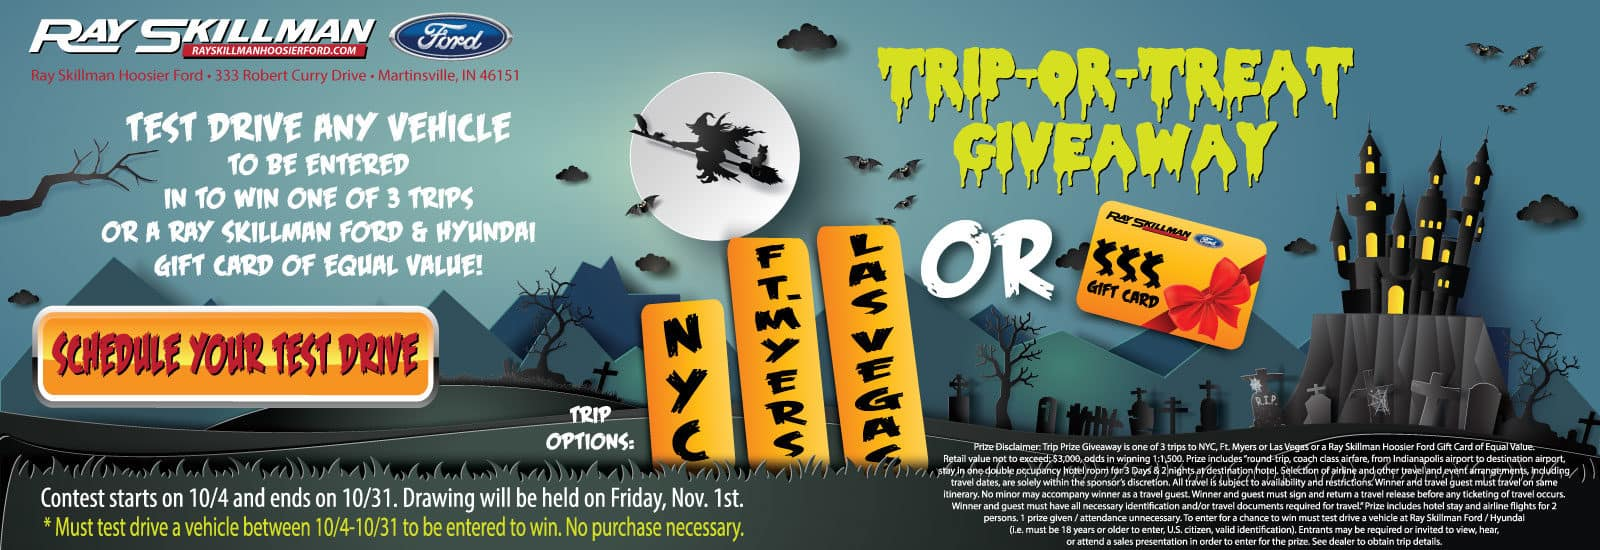 Ray-Skillman-Hoosier-Ford-Halloween-Trip-Giveaway-Web-Banner